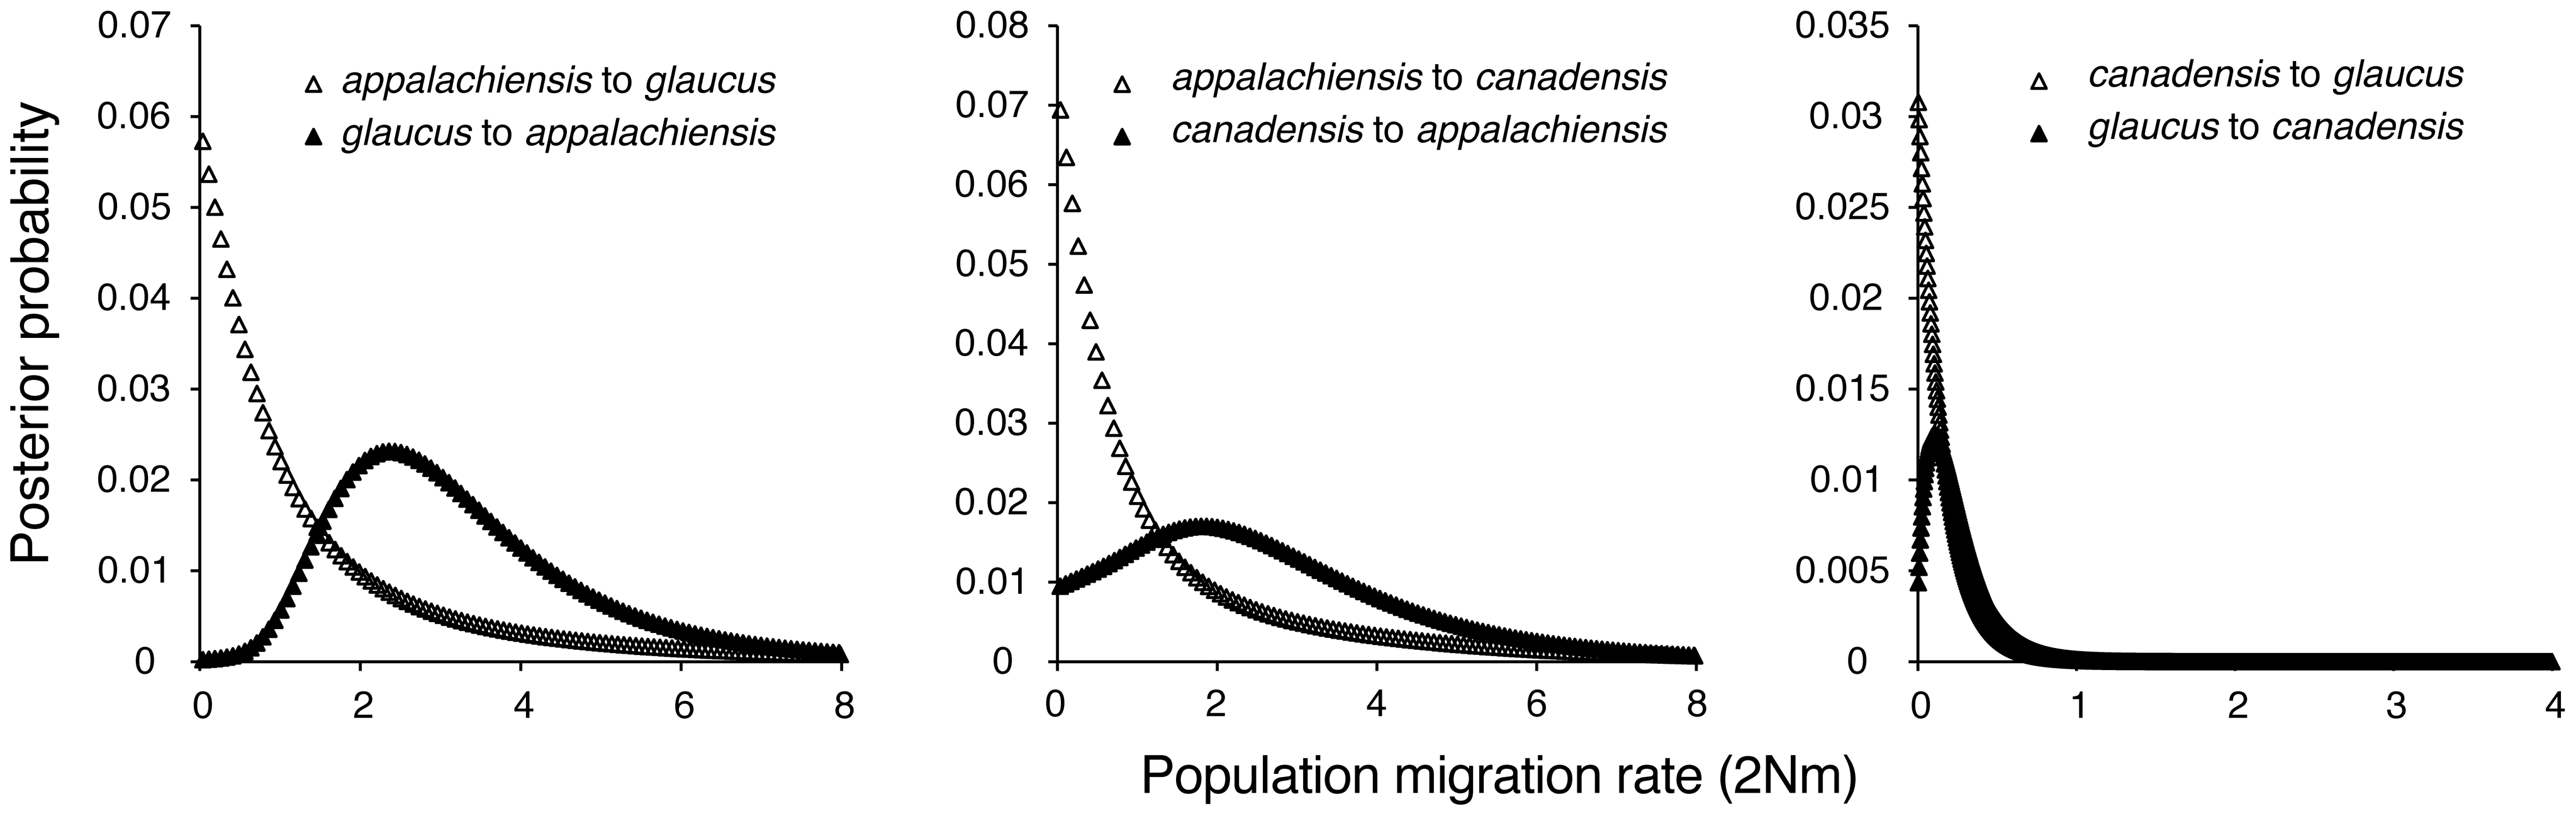 Estimated gene flow among <i>appalachiensis</i>, <i>glaucus</i>, and <i>canadensis</i>.